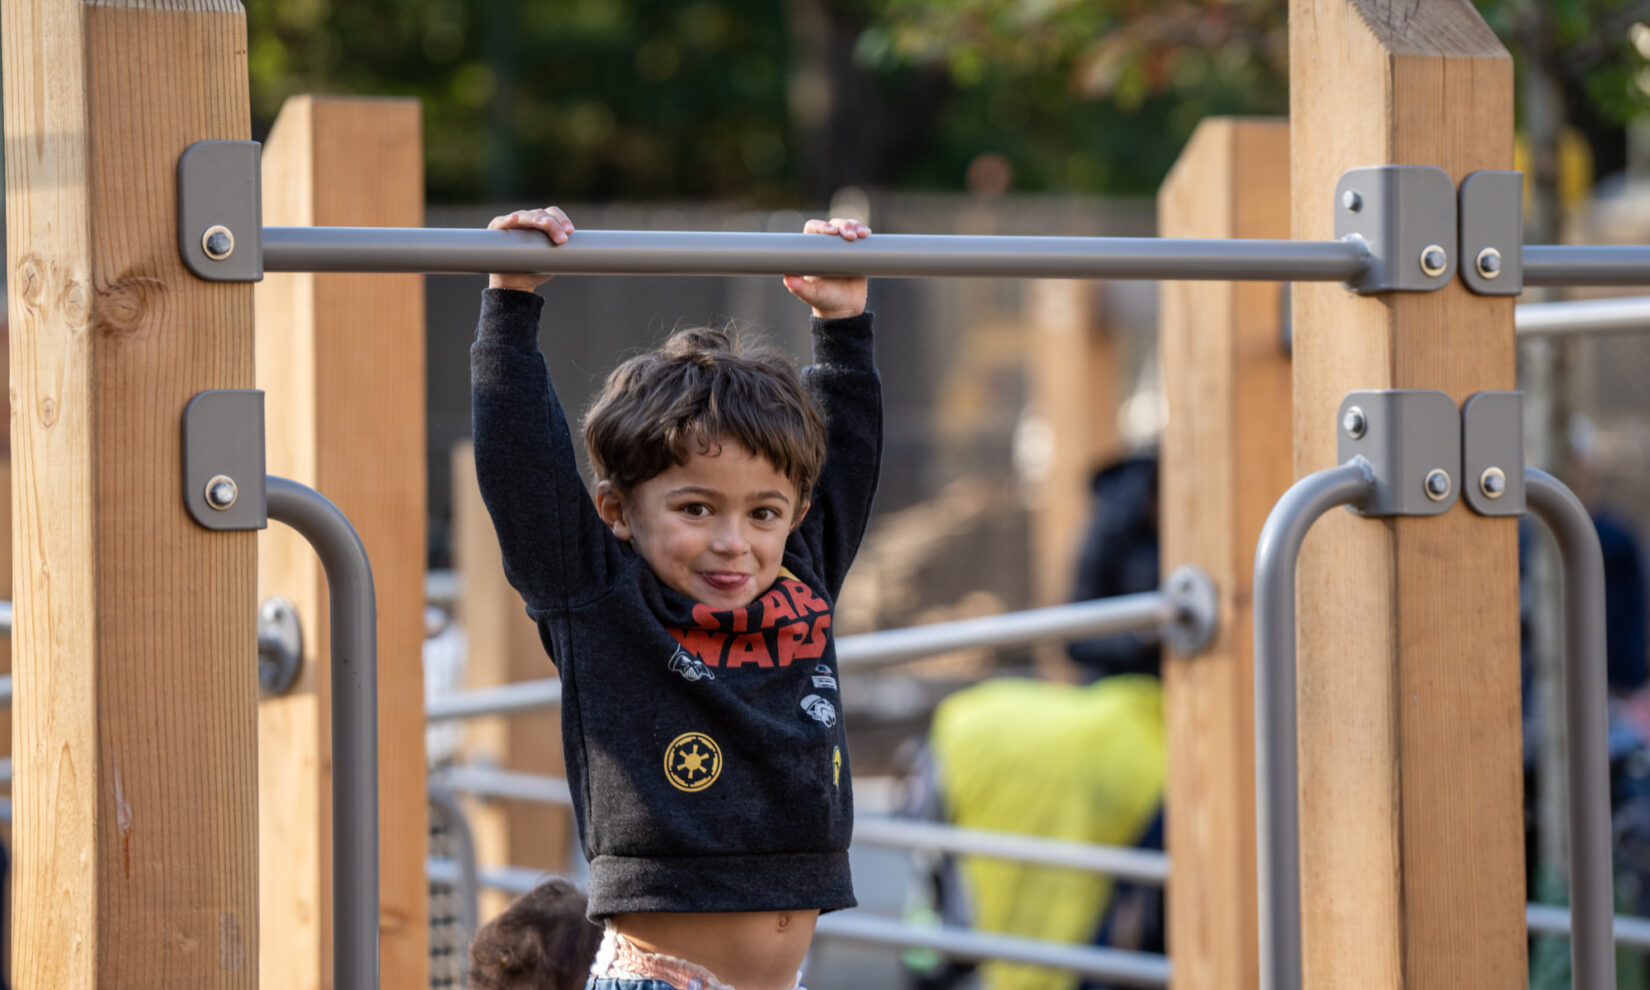 A very young child hangs from a bar on the climbing equipment of the playspace.